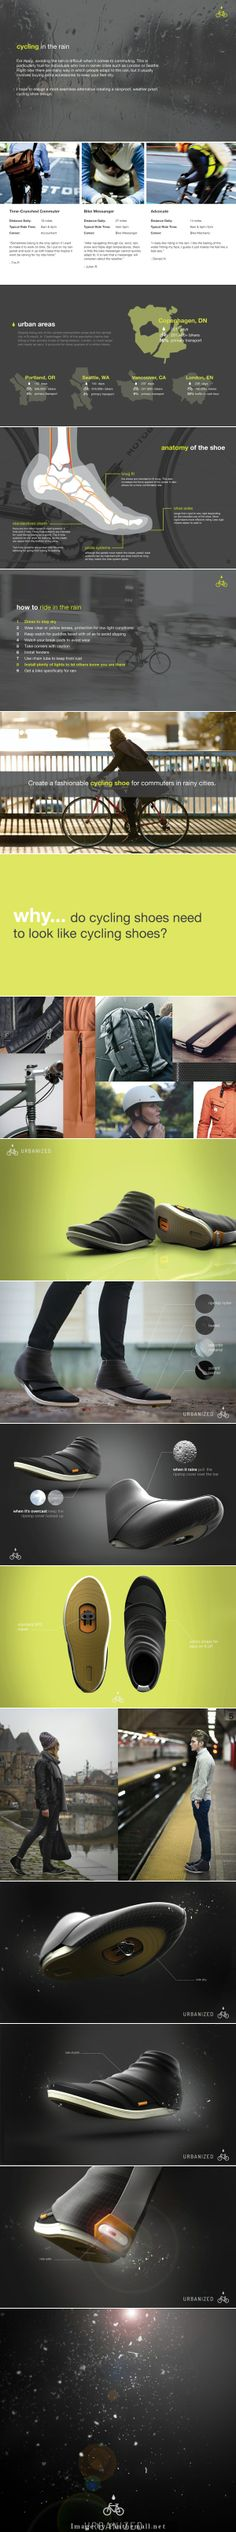 #productdesign #webdesign #branding #concept... - a grouped images picture - Pin Them All